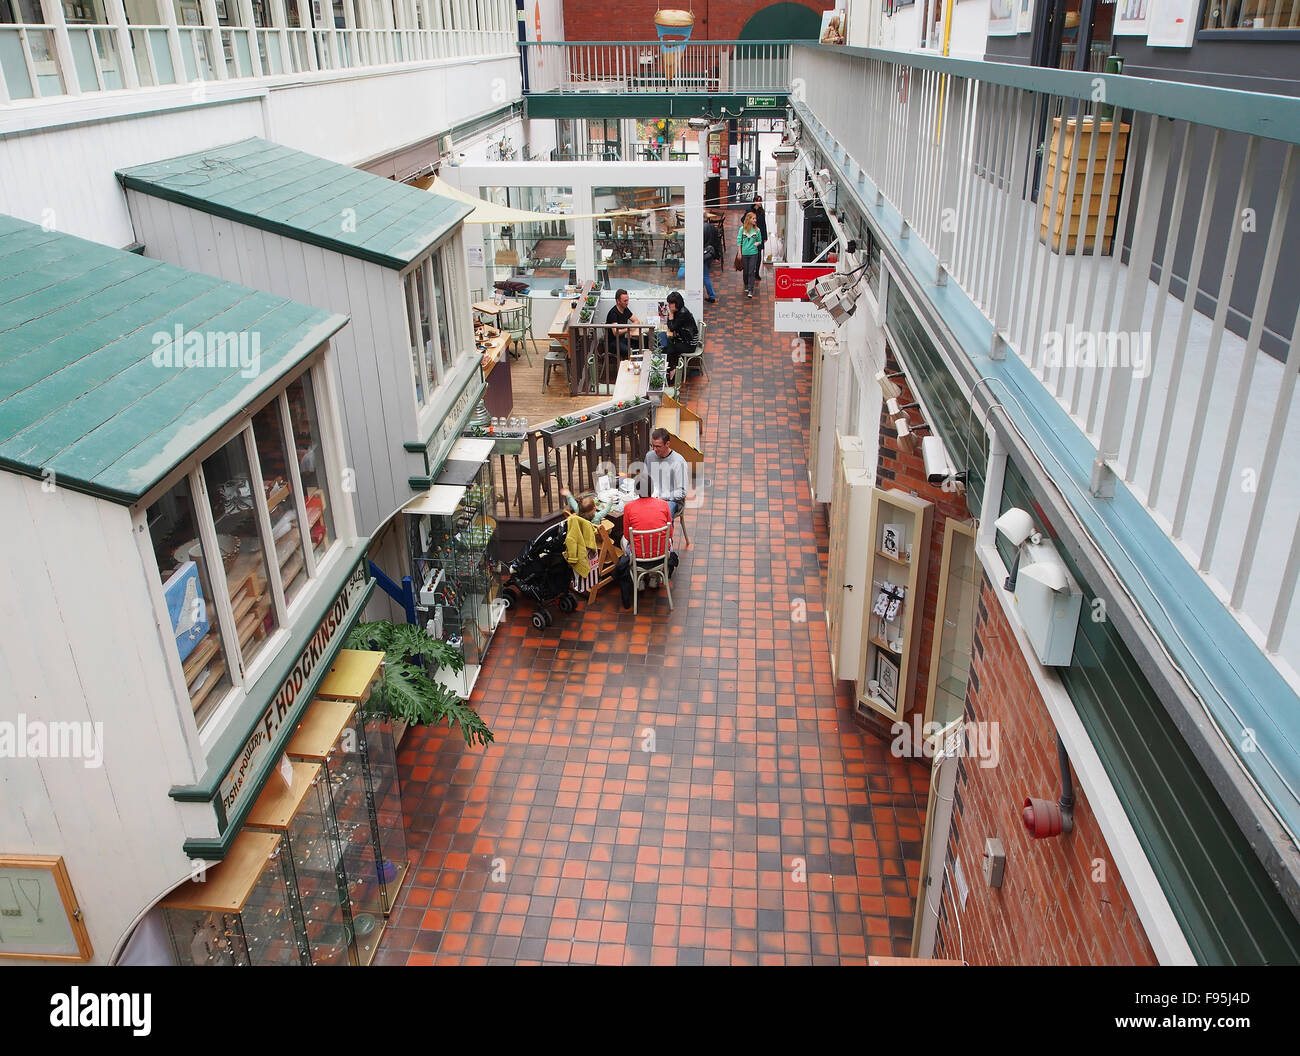 Interior of the Manchester Crafts and Design Centre on Oak Street, in the Norther Quarter of Manchester, UK. - Stock Image